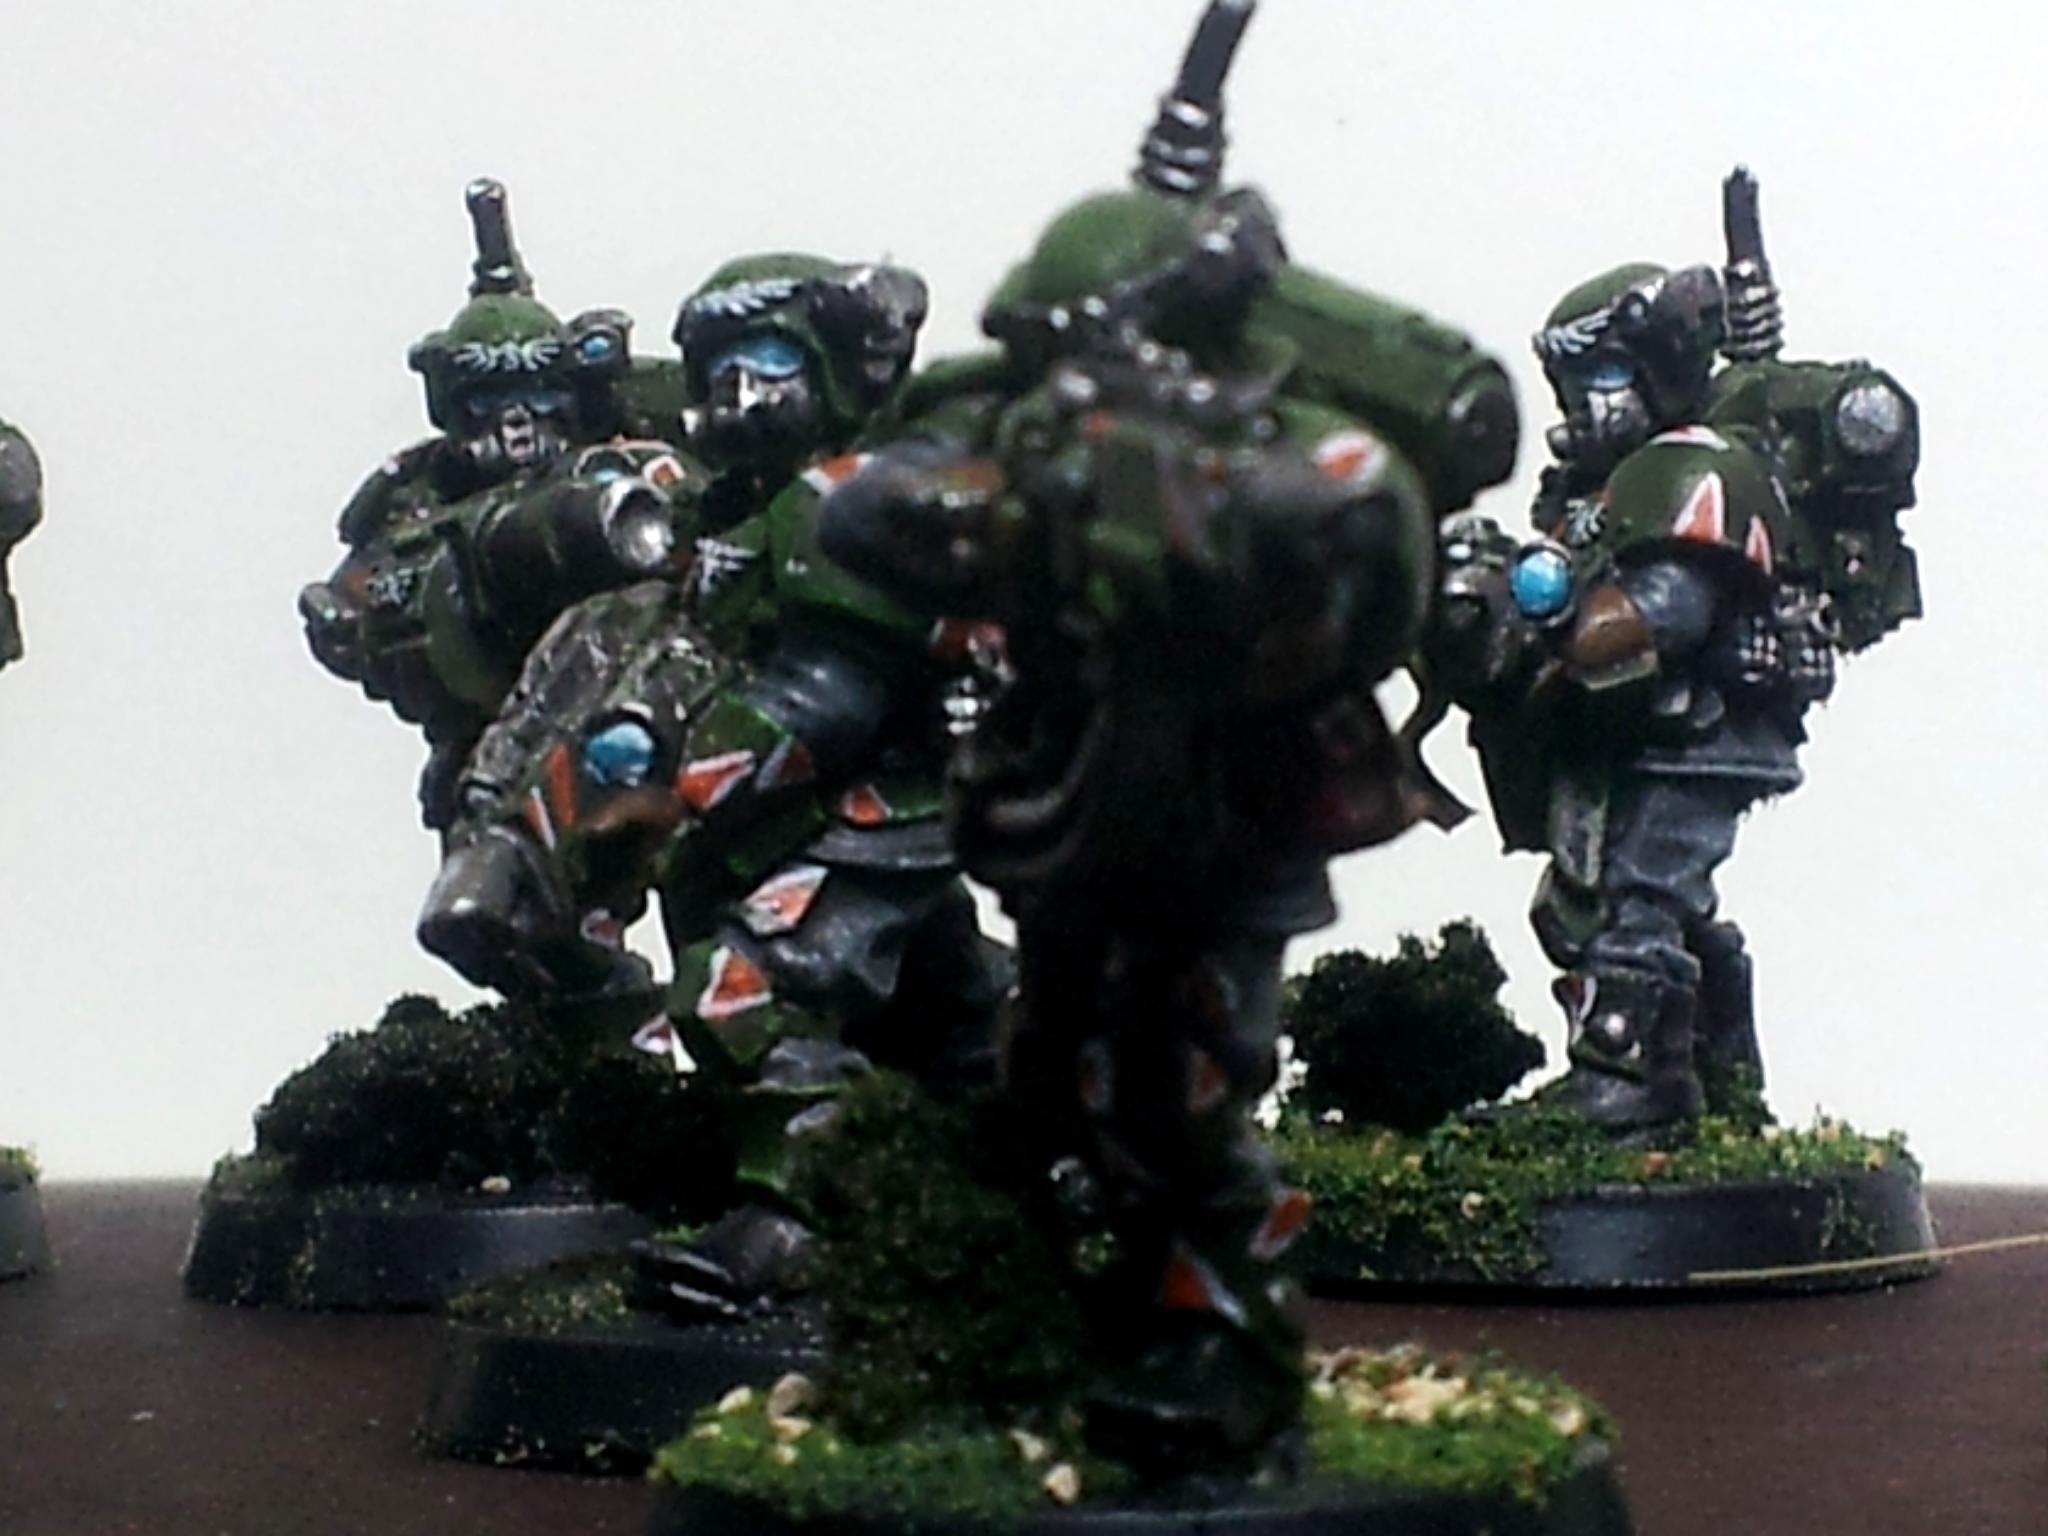 Imperial Guard, Storm Troopers, Warhammer 40,000